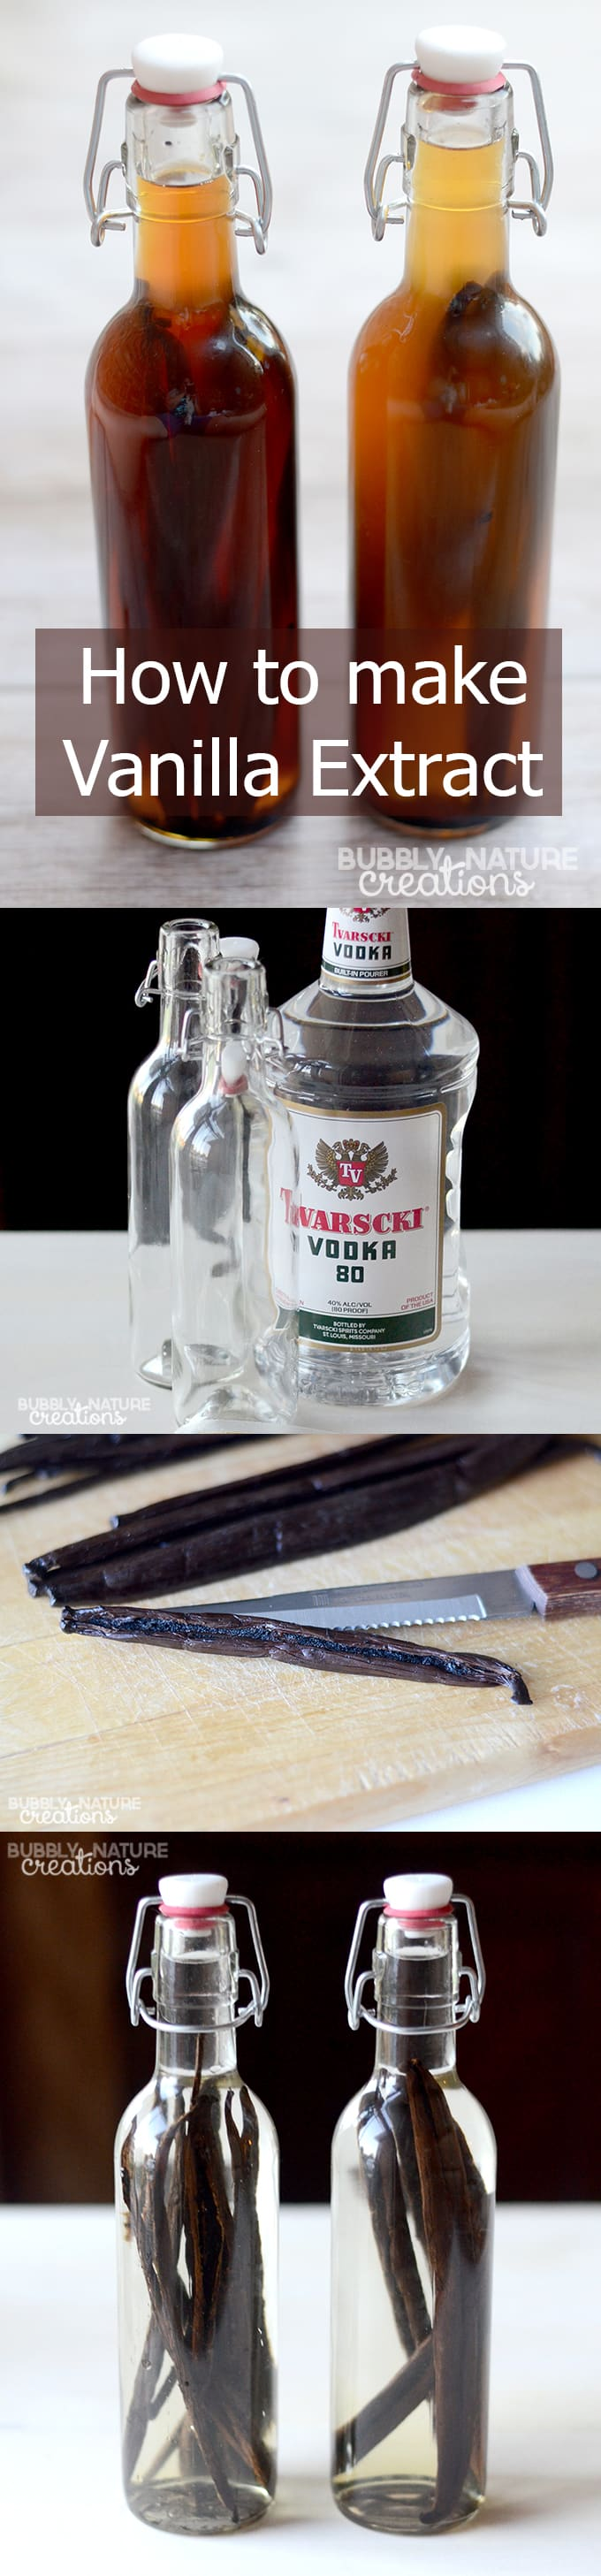 How to Make Vanilla Extract! Just in time for Christmas gift giving!  This simple tutorial explains it all in detail!